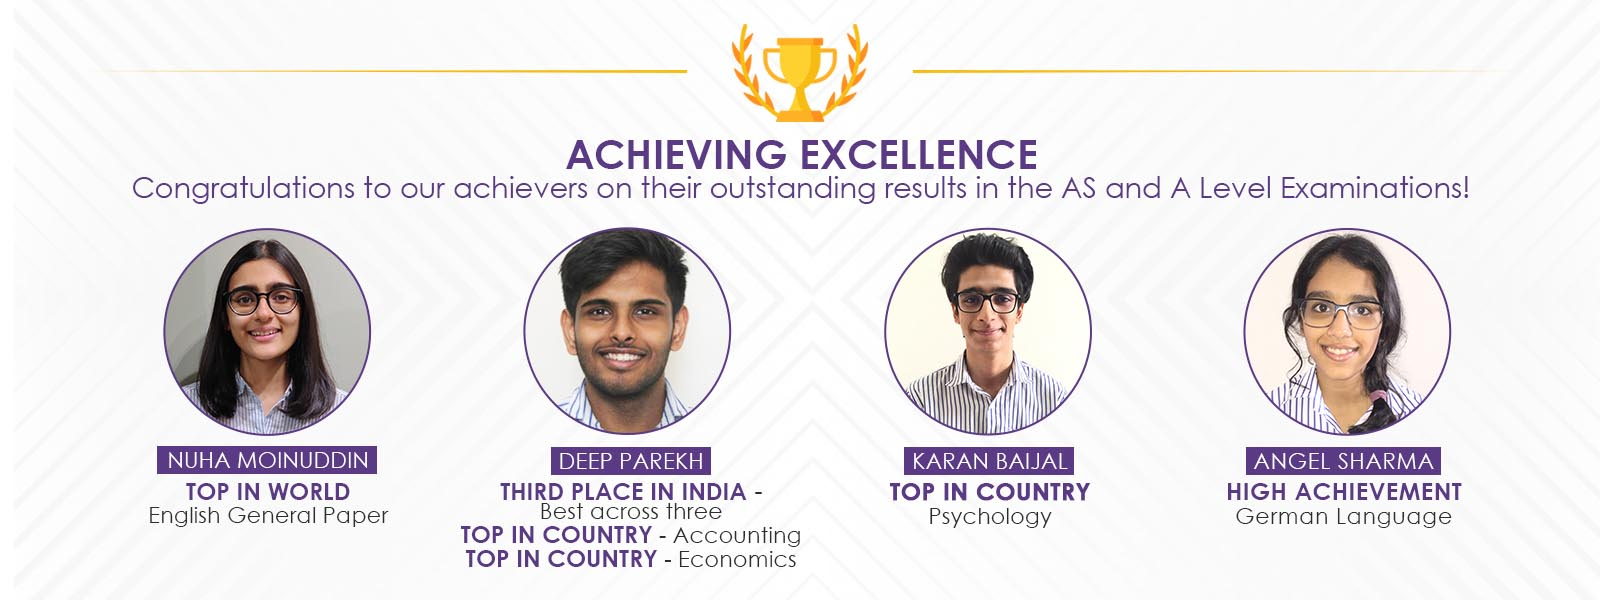 achieving excellence in AS and A level examination jbcn international school borivali